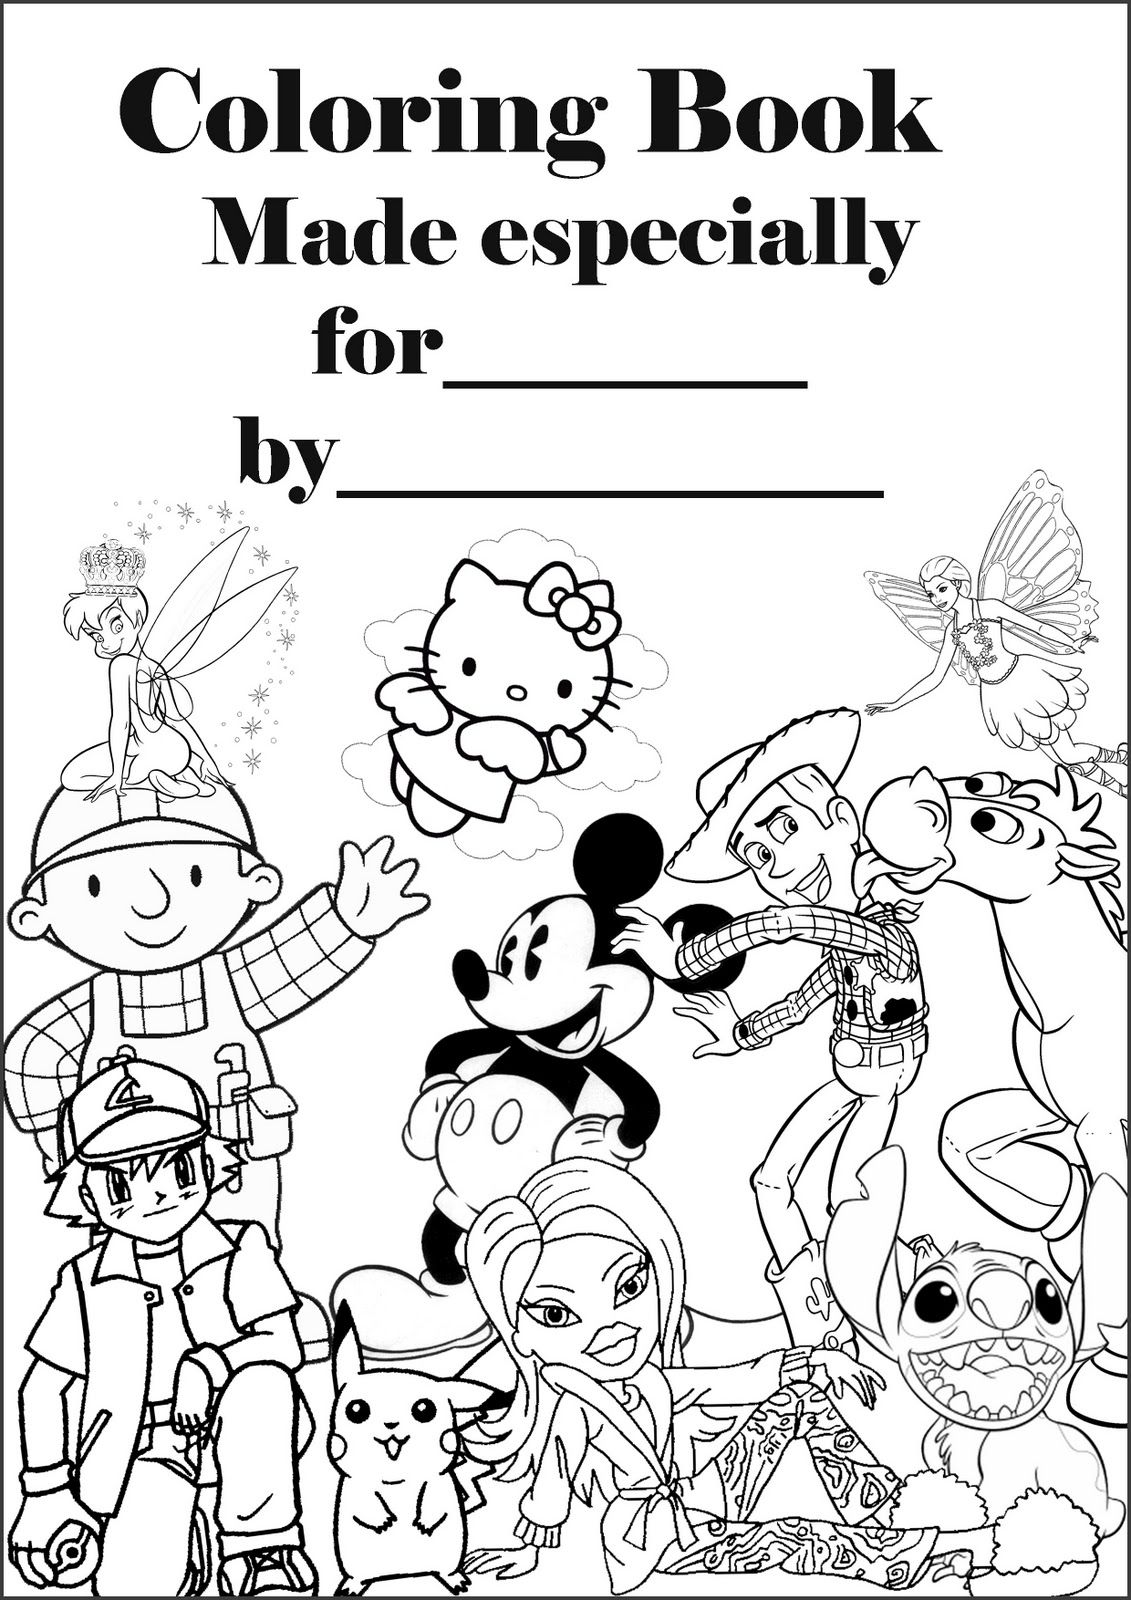 Coloring Page Covers